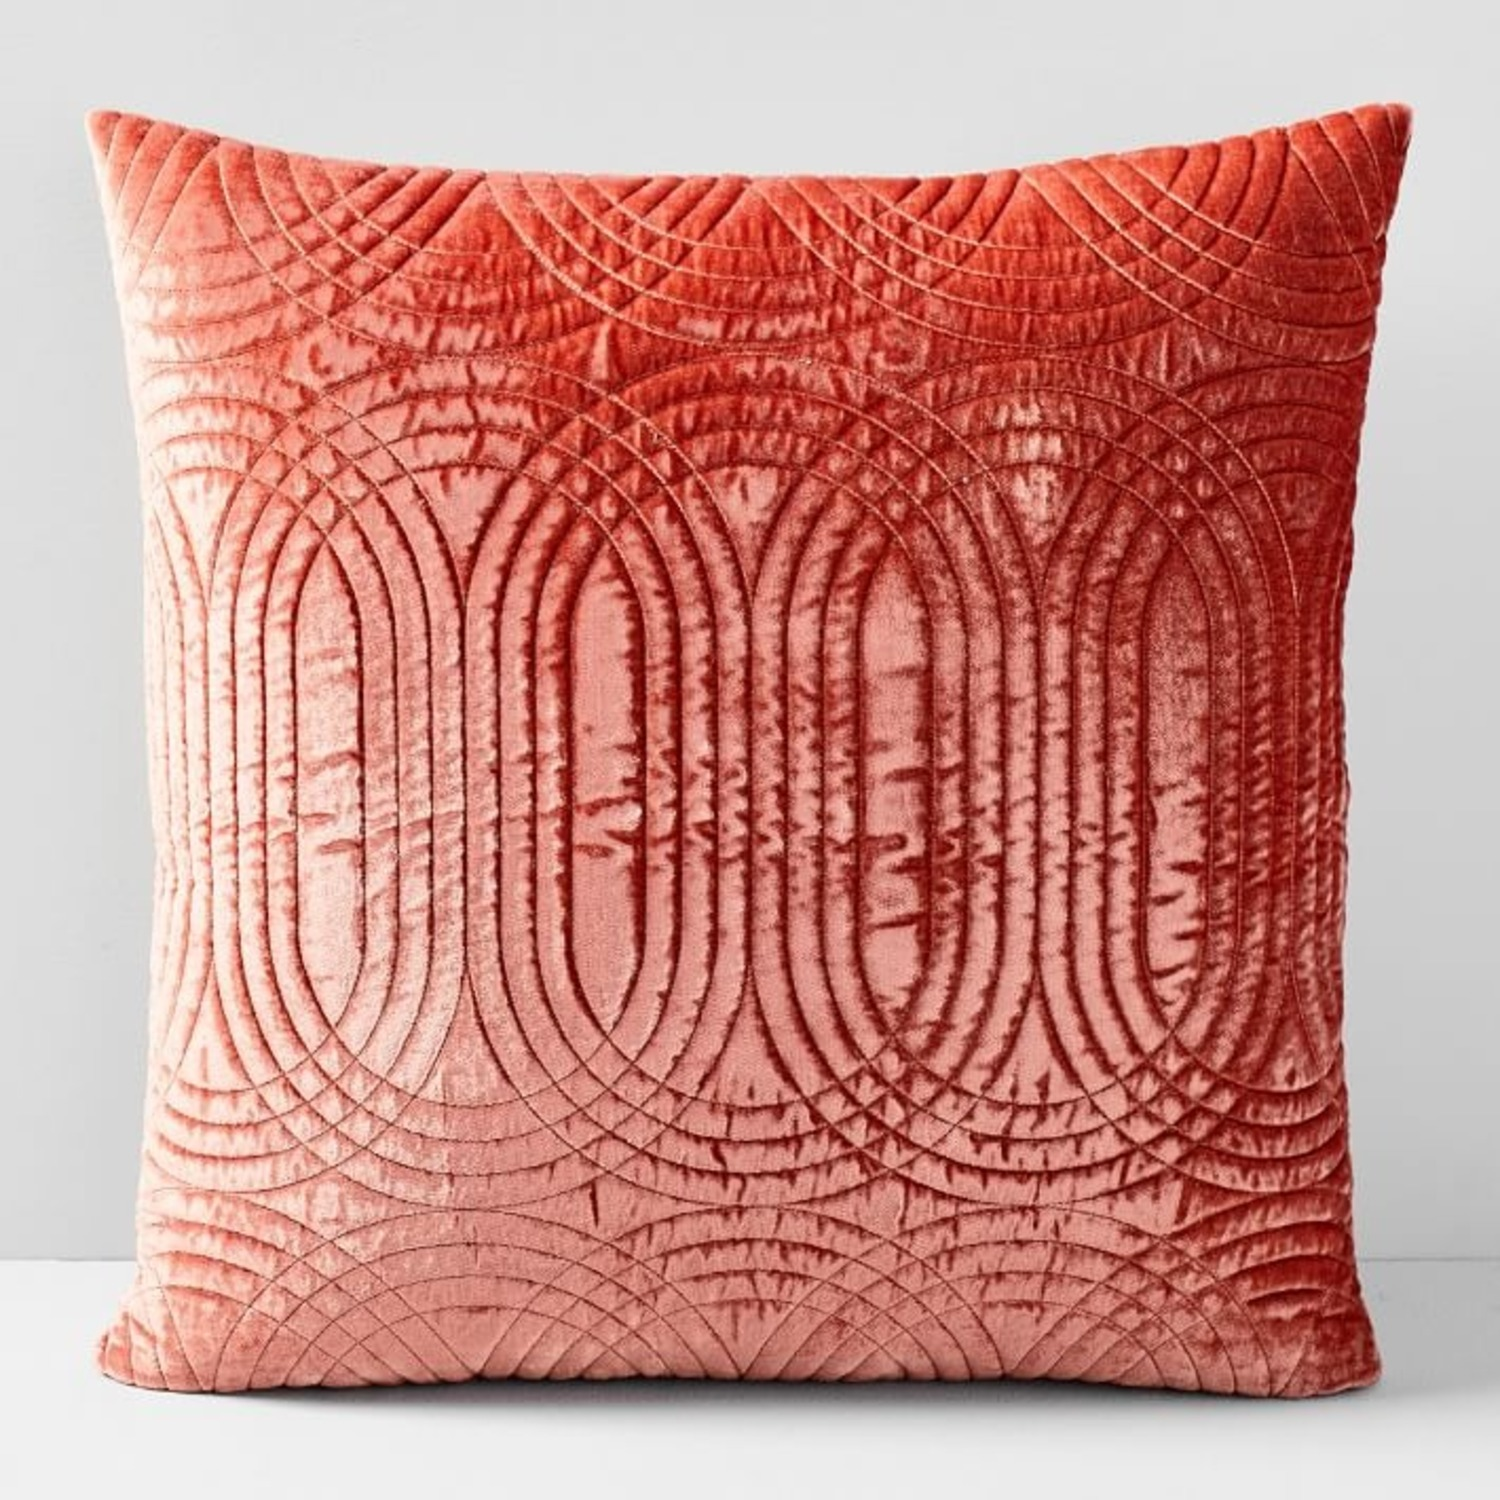 West Elm Lush Velvet Infinity Quilted Pillow Cover - image-1